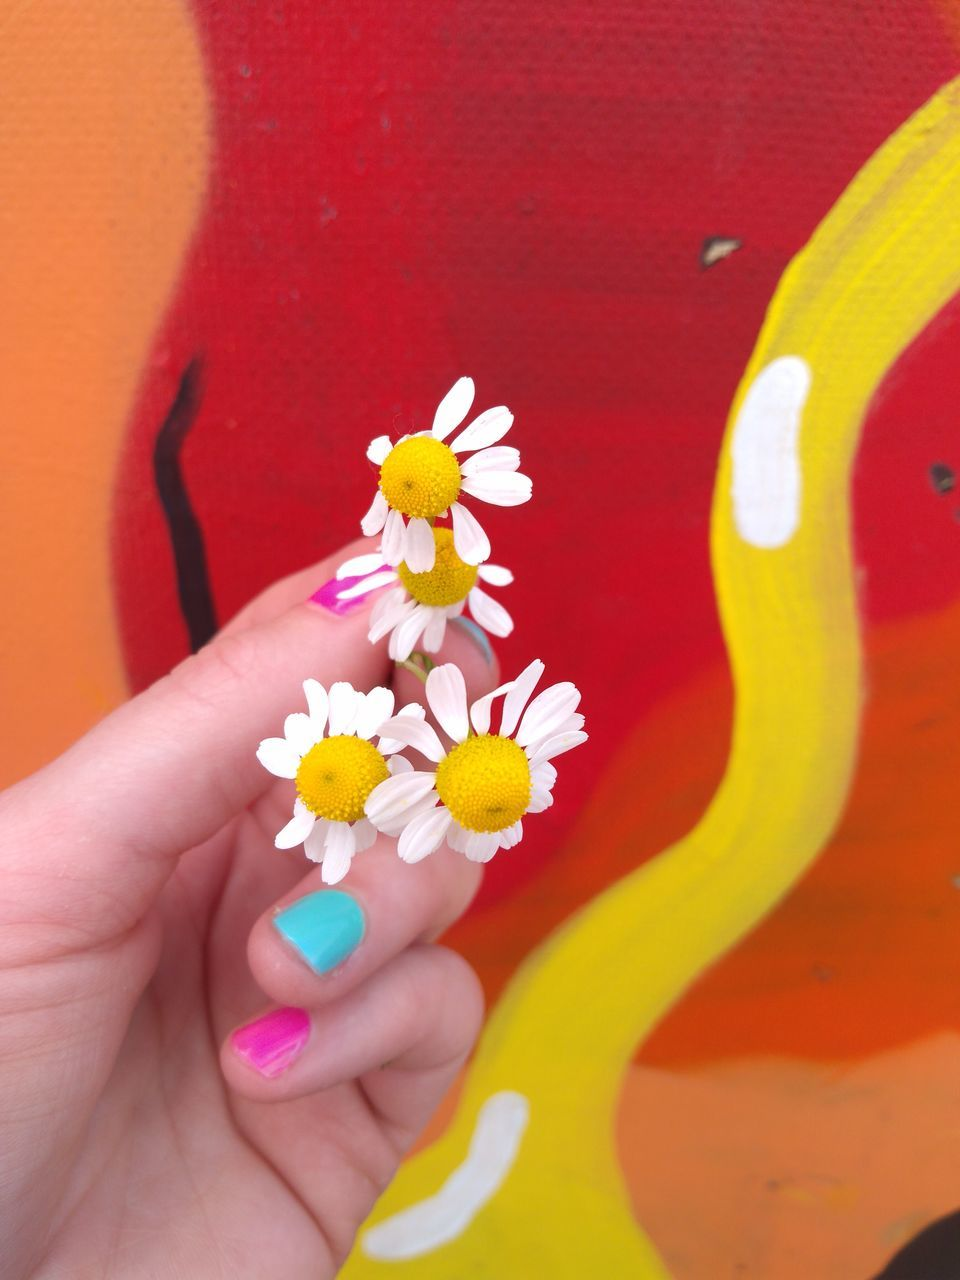 flower, real people, petal, one person, freshness, human hand, flower head, fragility, human body part, close-up, multi colored, yellow, holding, women, day, outdoors, nature, beauty in nature, people